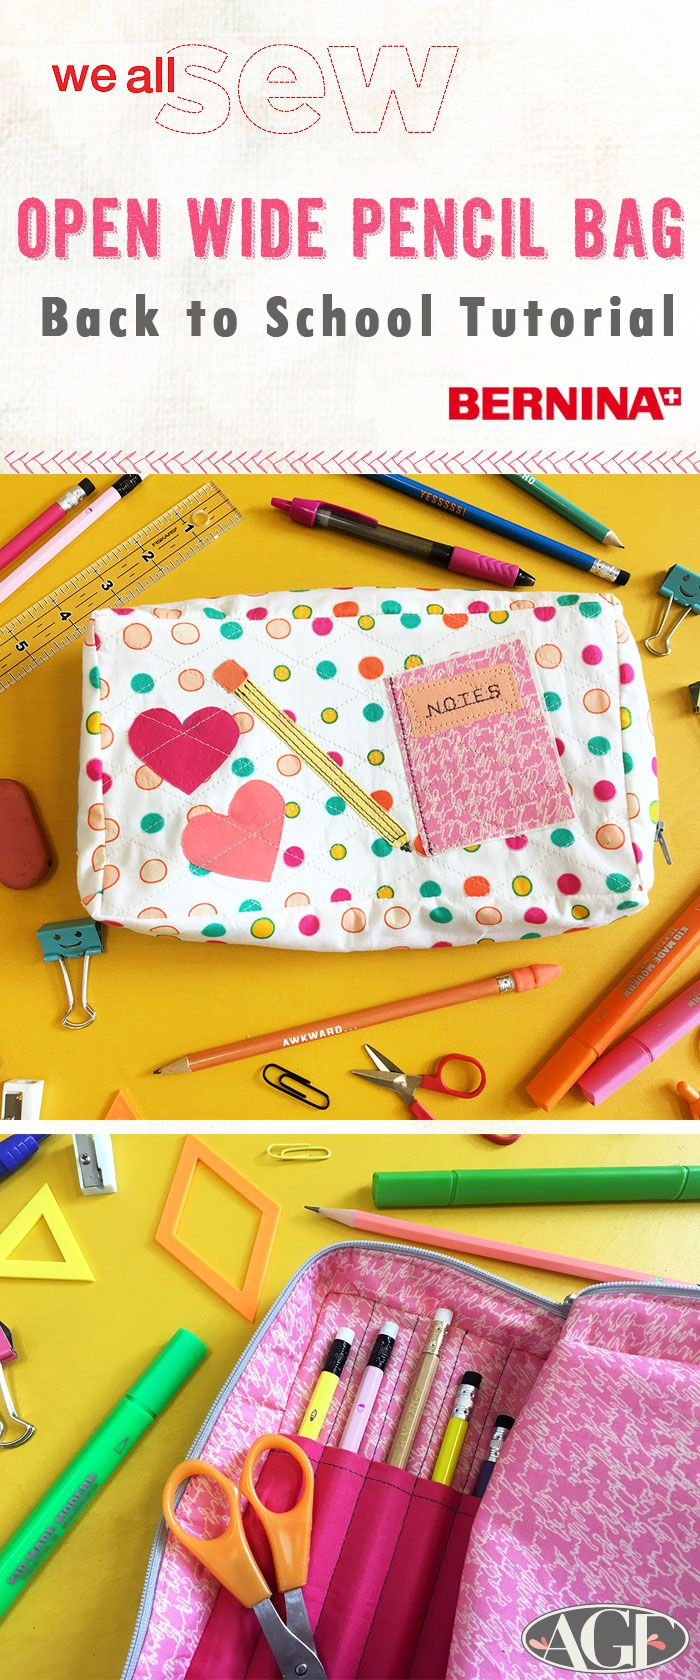 Back to School Sewing- Open Wide Pencil Bag Tutorial